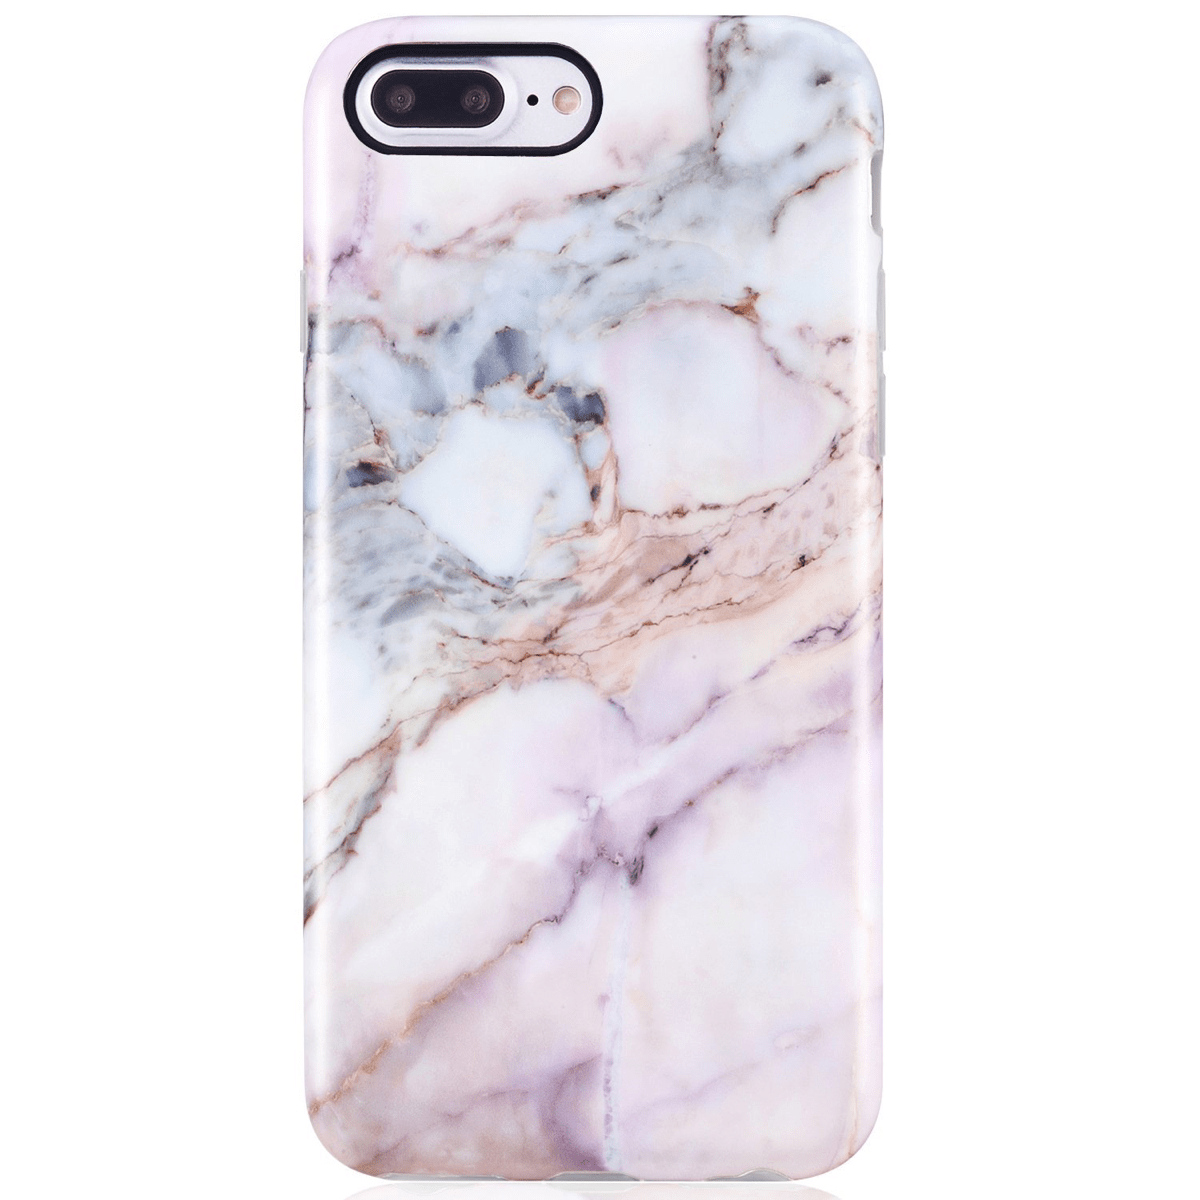 VIVIBIN Marble case in our list of Mother's Day iPhone cases.